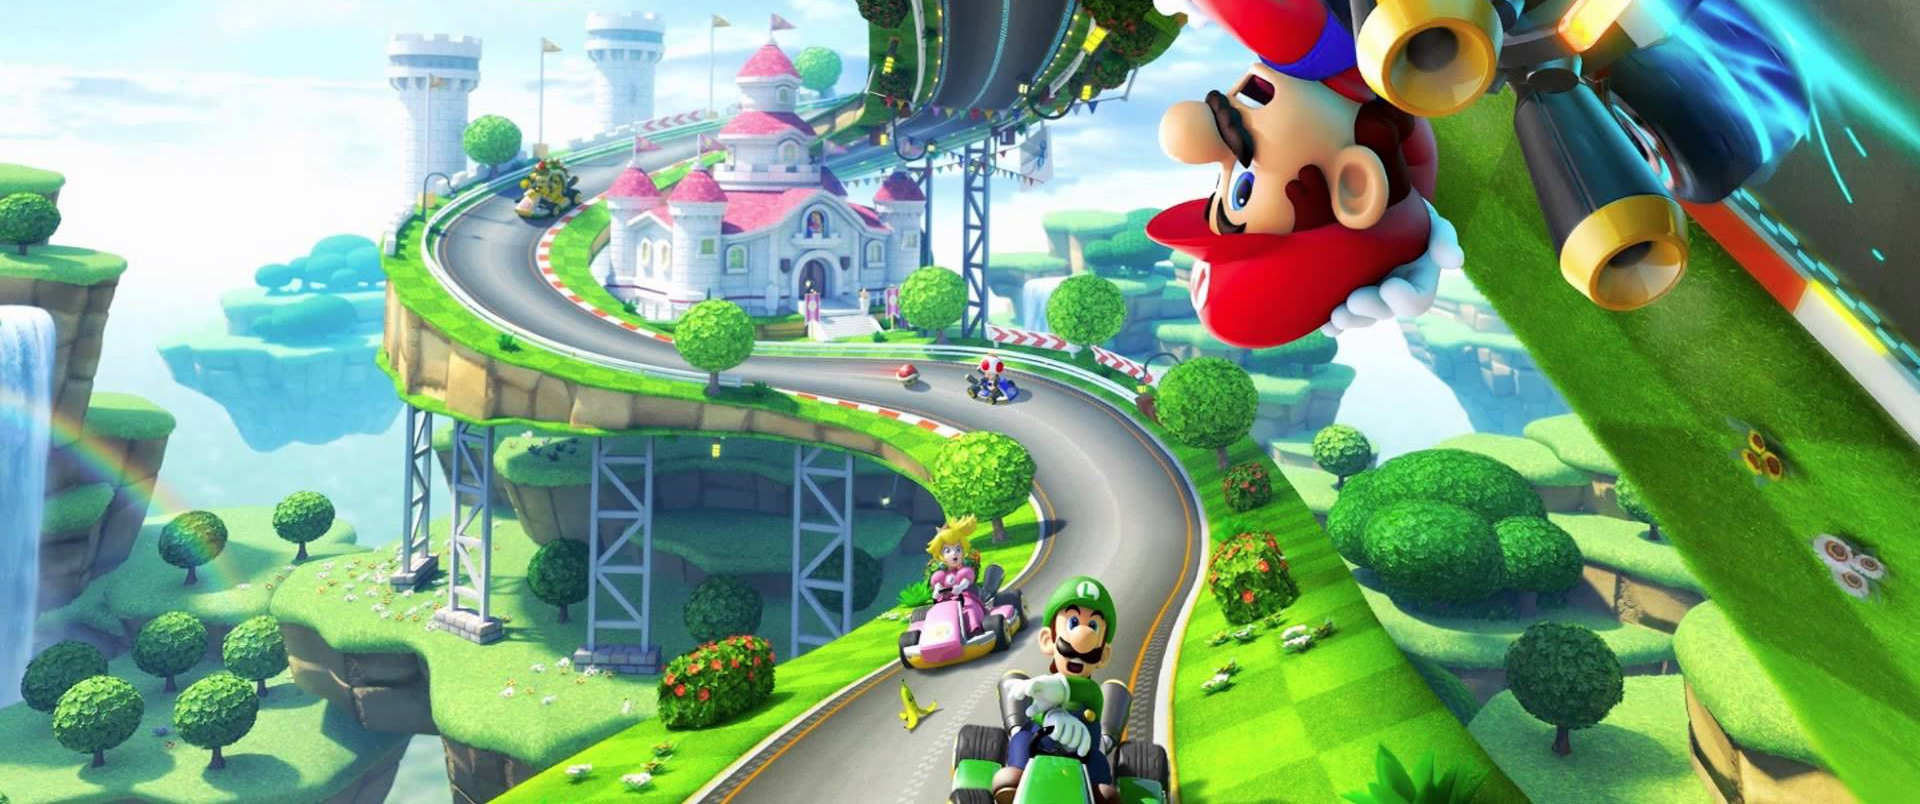 Nintendo looks to release its first mobile game this year